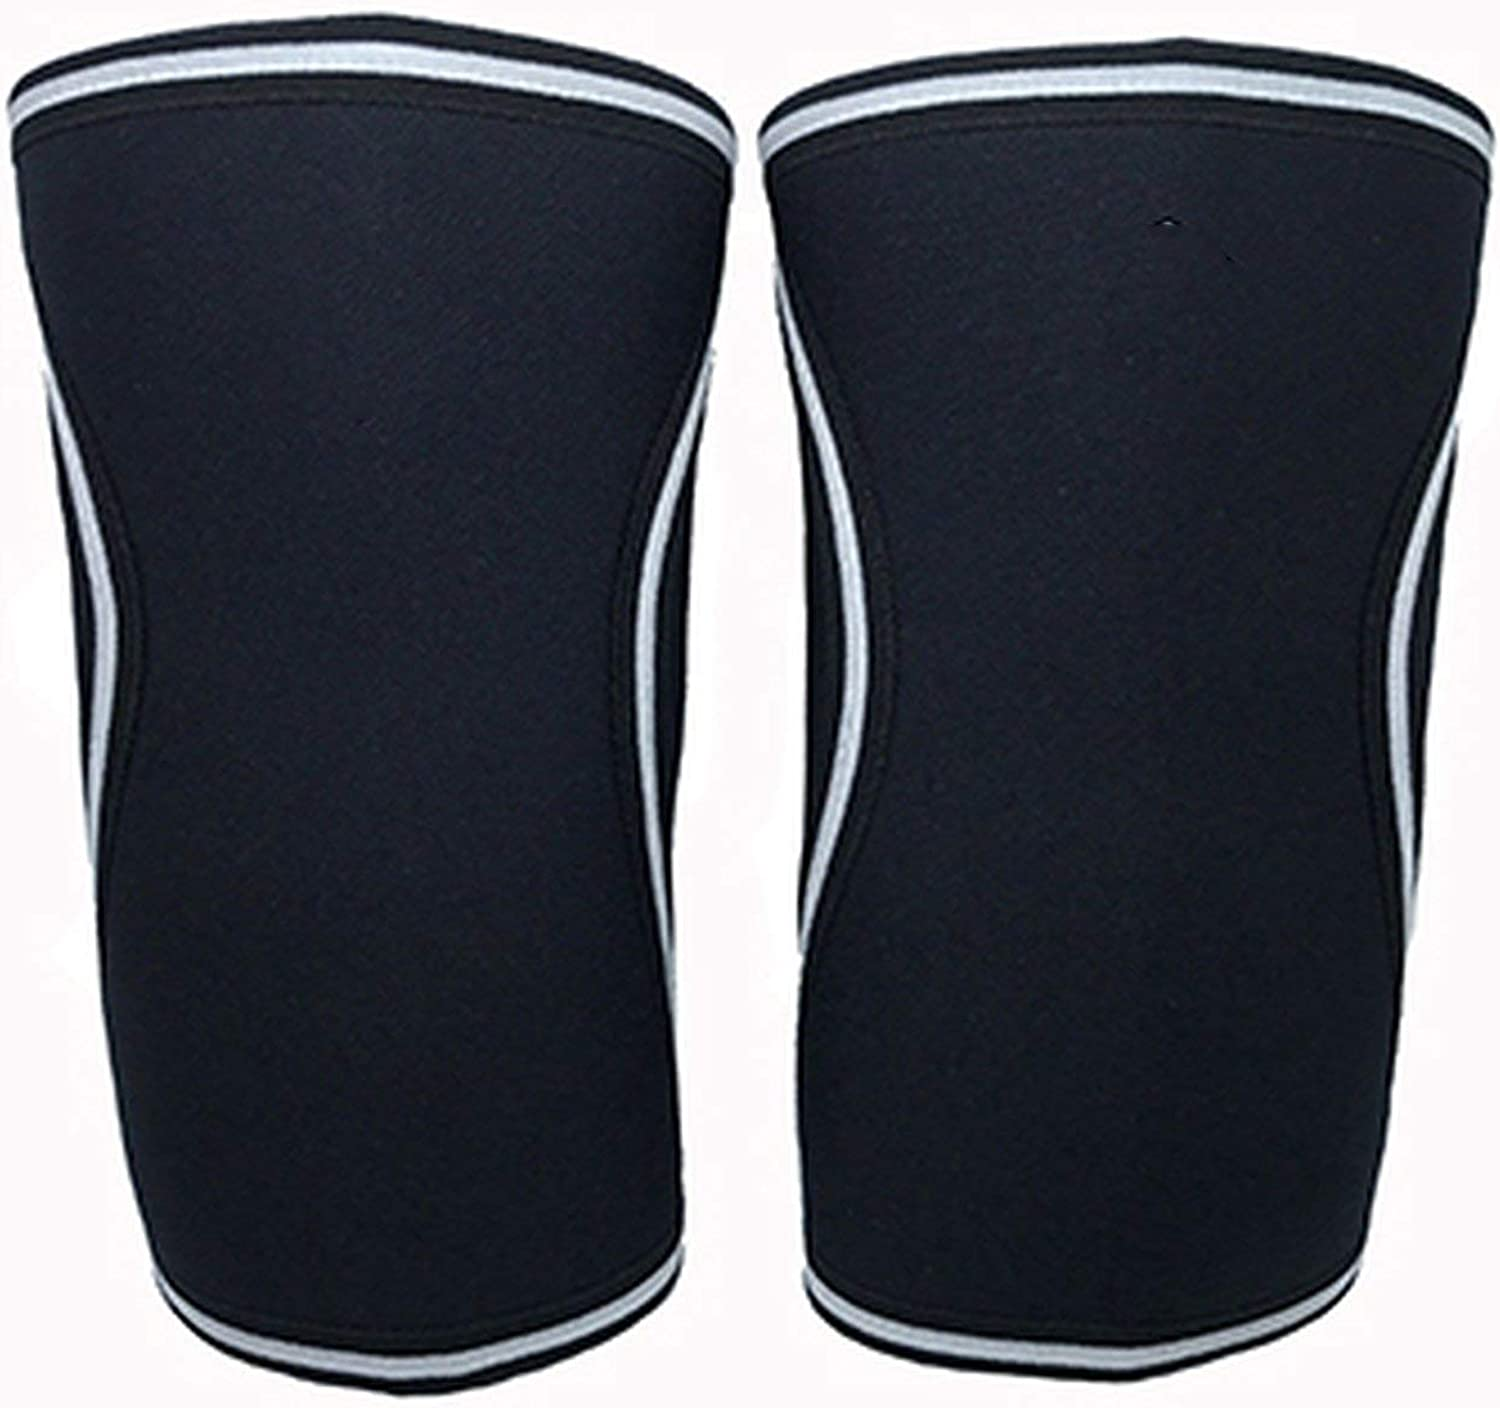 Compression Knee Sleeves Brace Support Neoprene 5mm for training, weightlifting, running, basketball, squats By SP WHY,Black,S